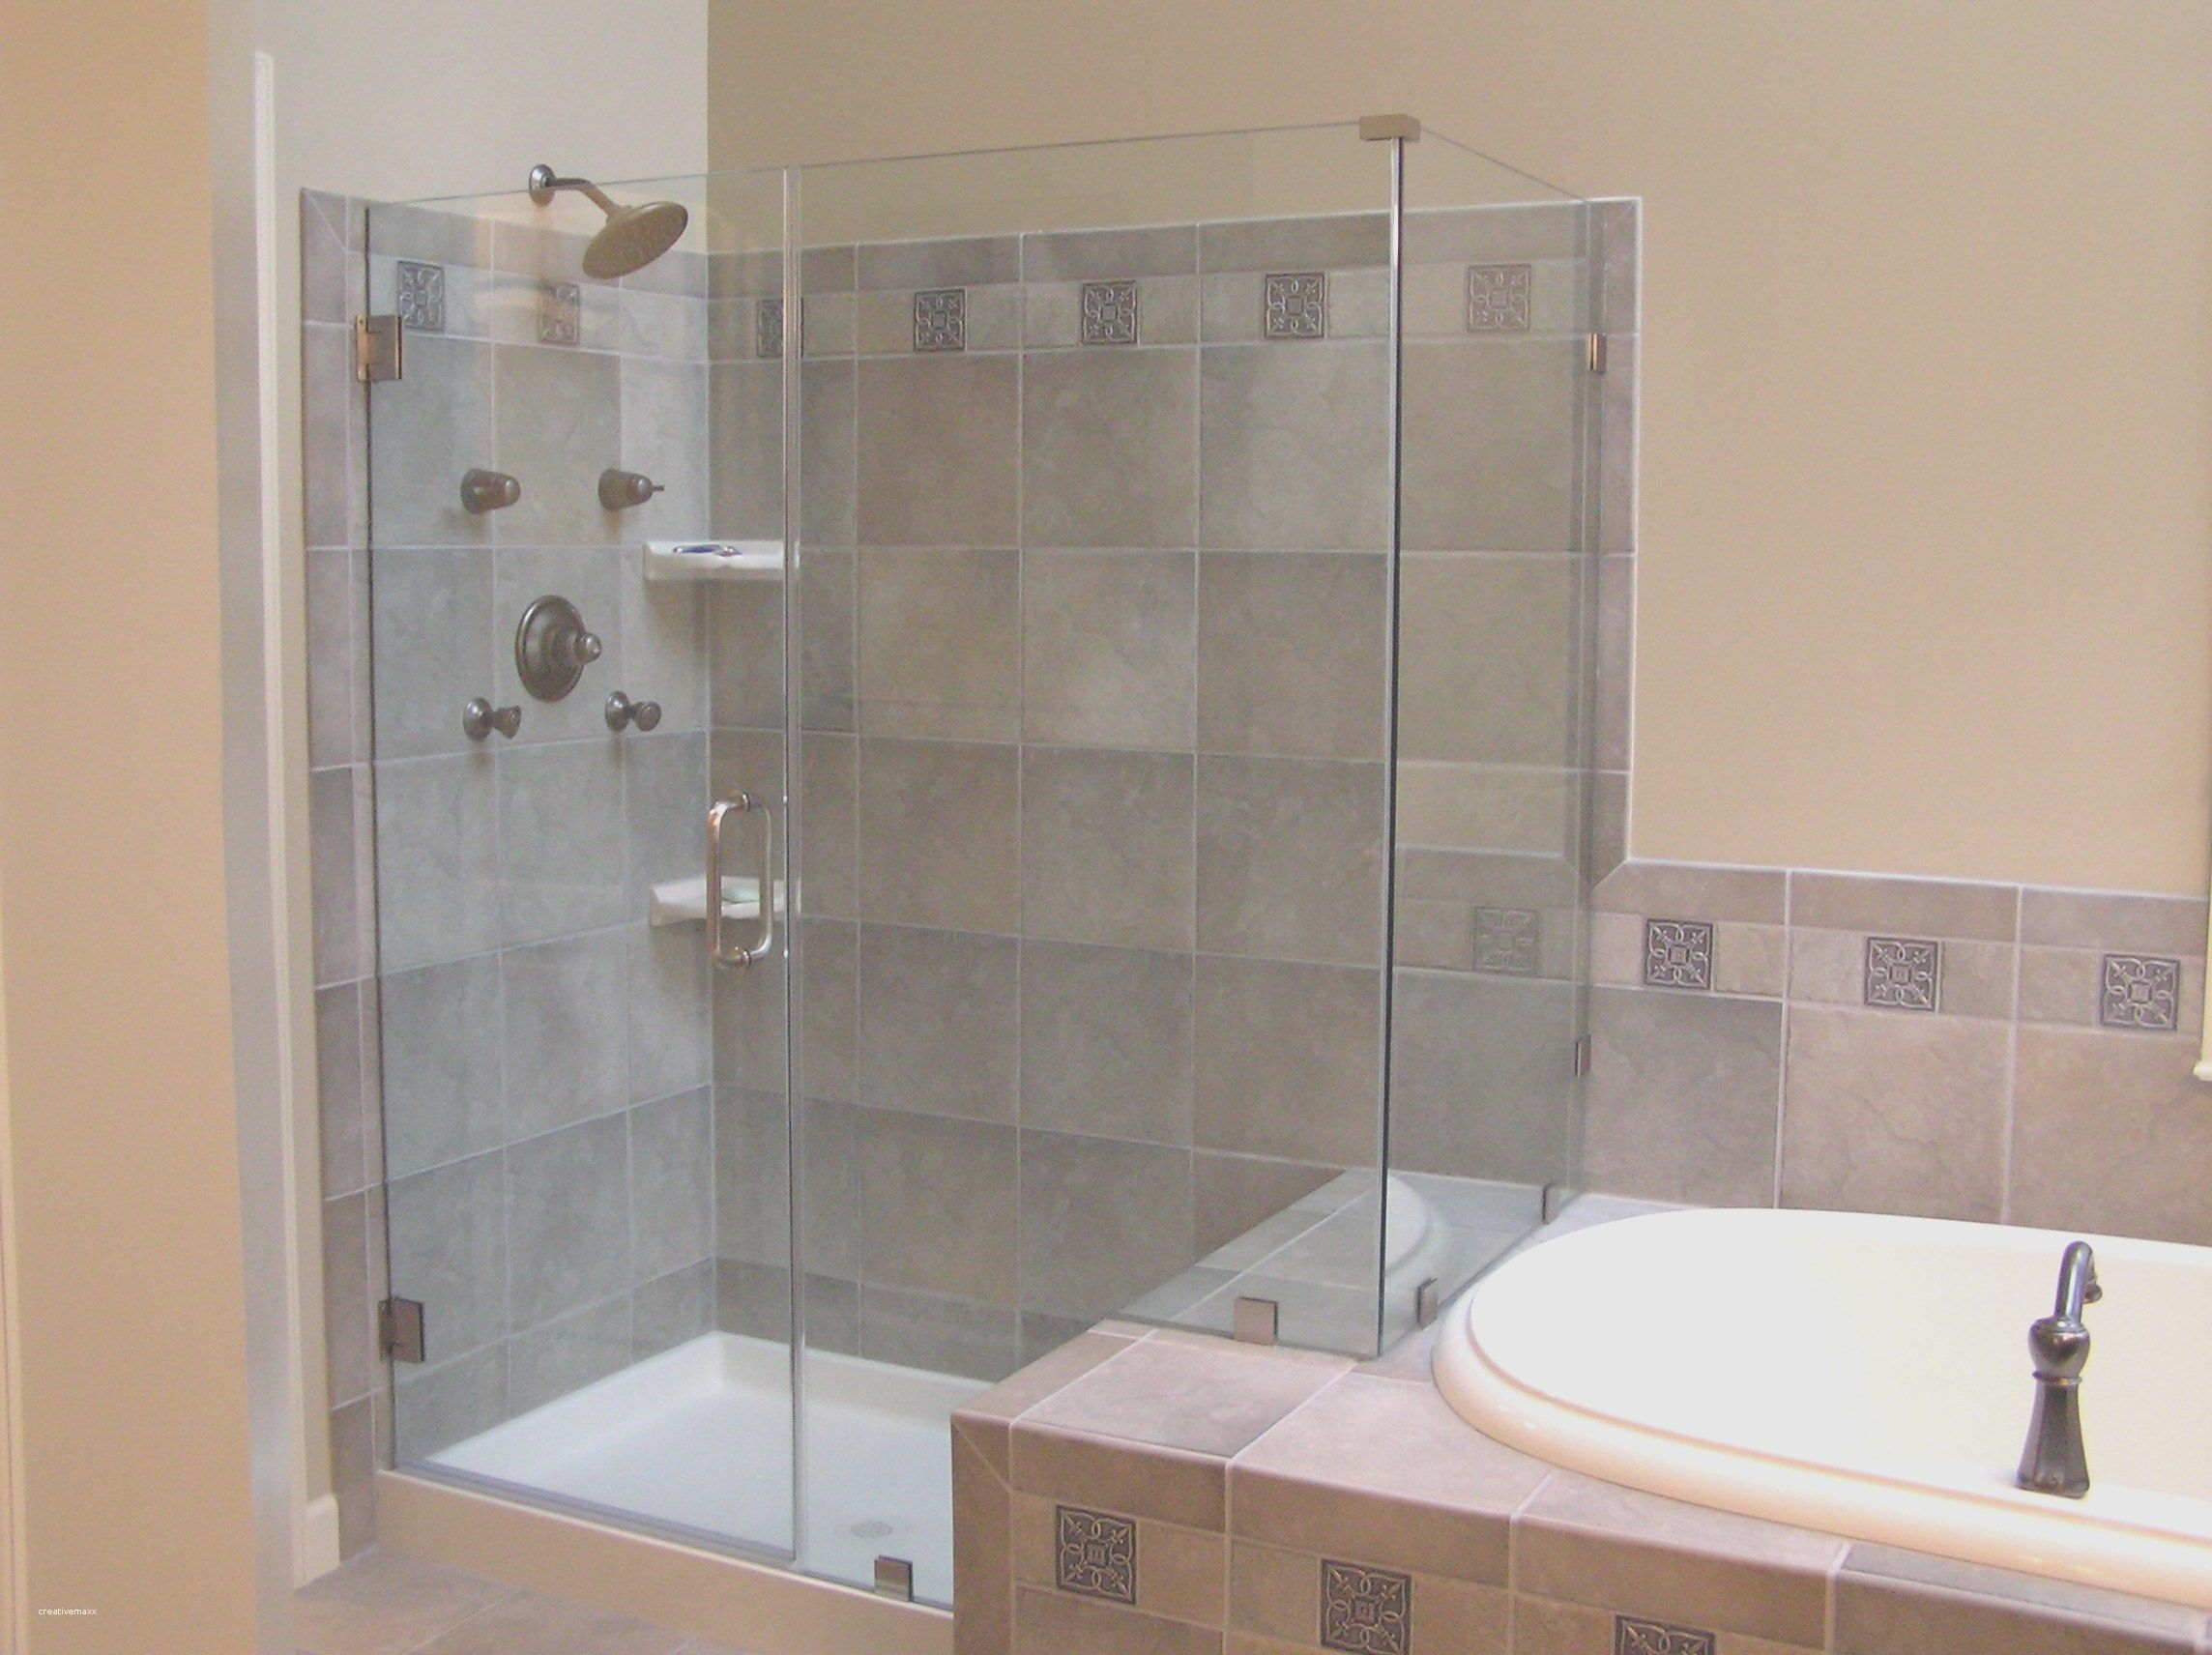 photos of remodeled bathrooms%0A Small Bathrooms On A Budget  Awesome Small Bathrooms On A Budget  Diy Bathroom  Remodel